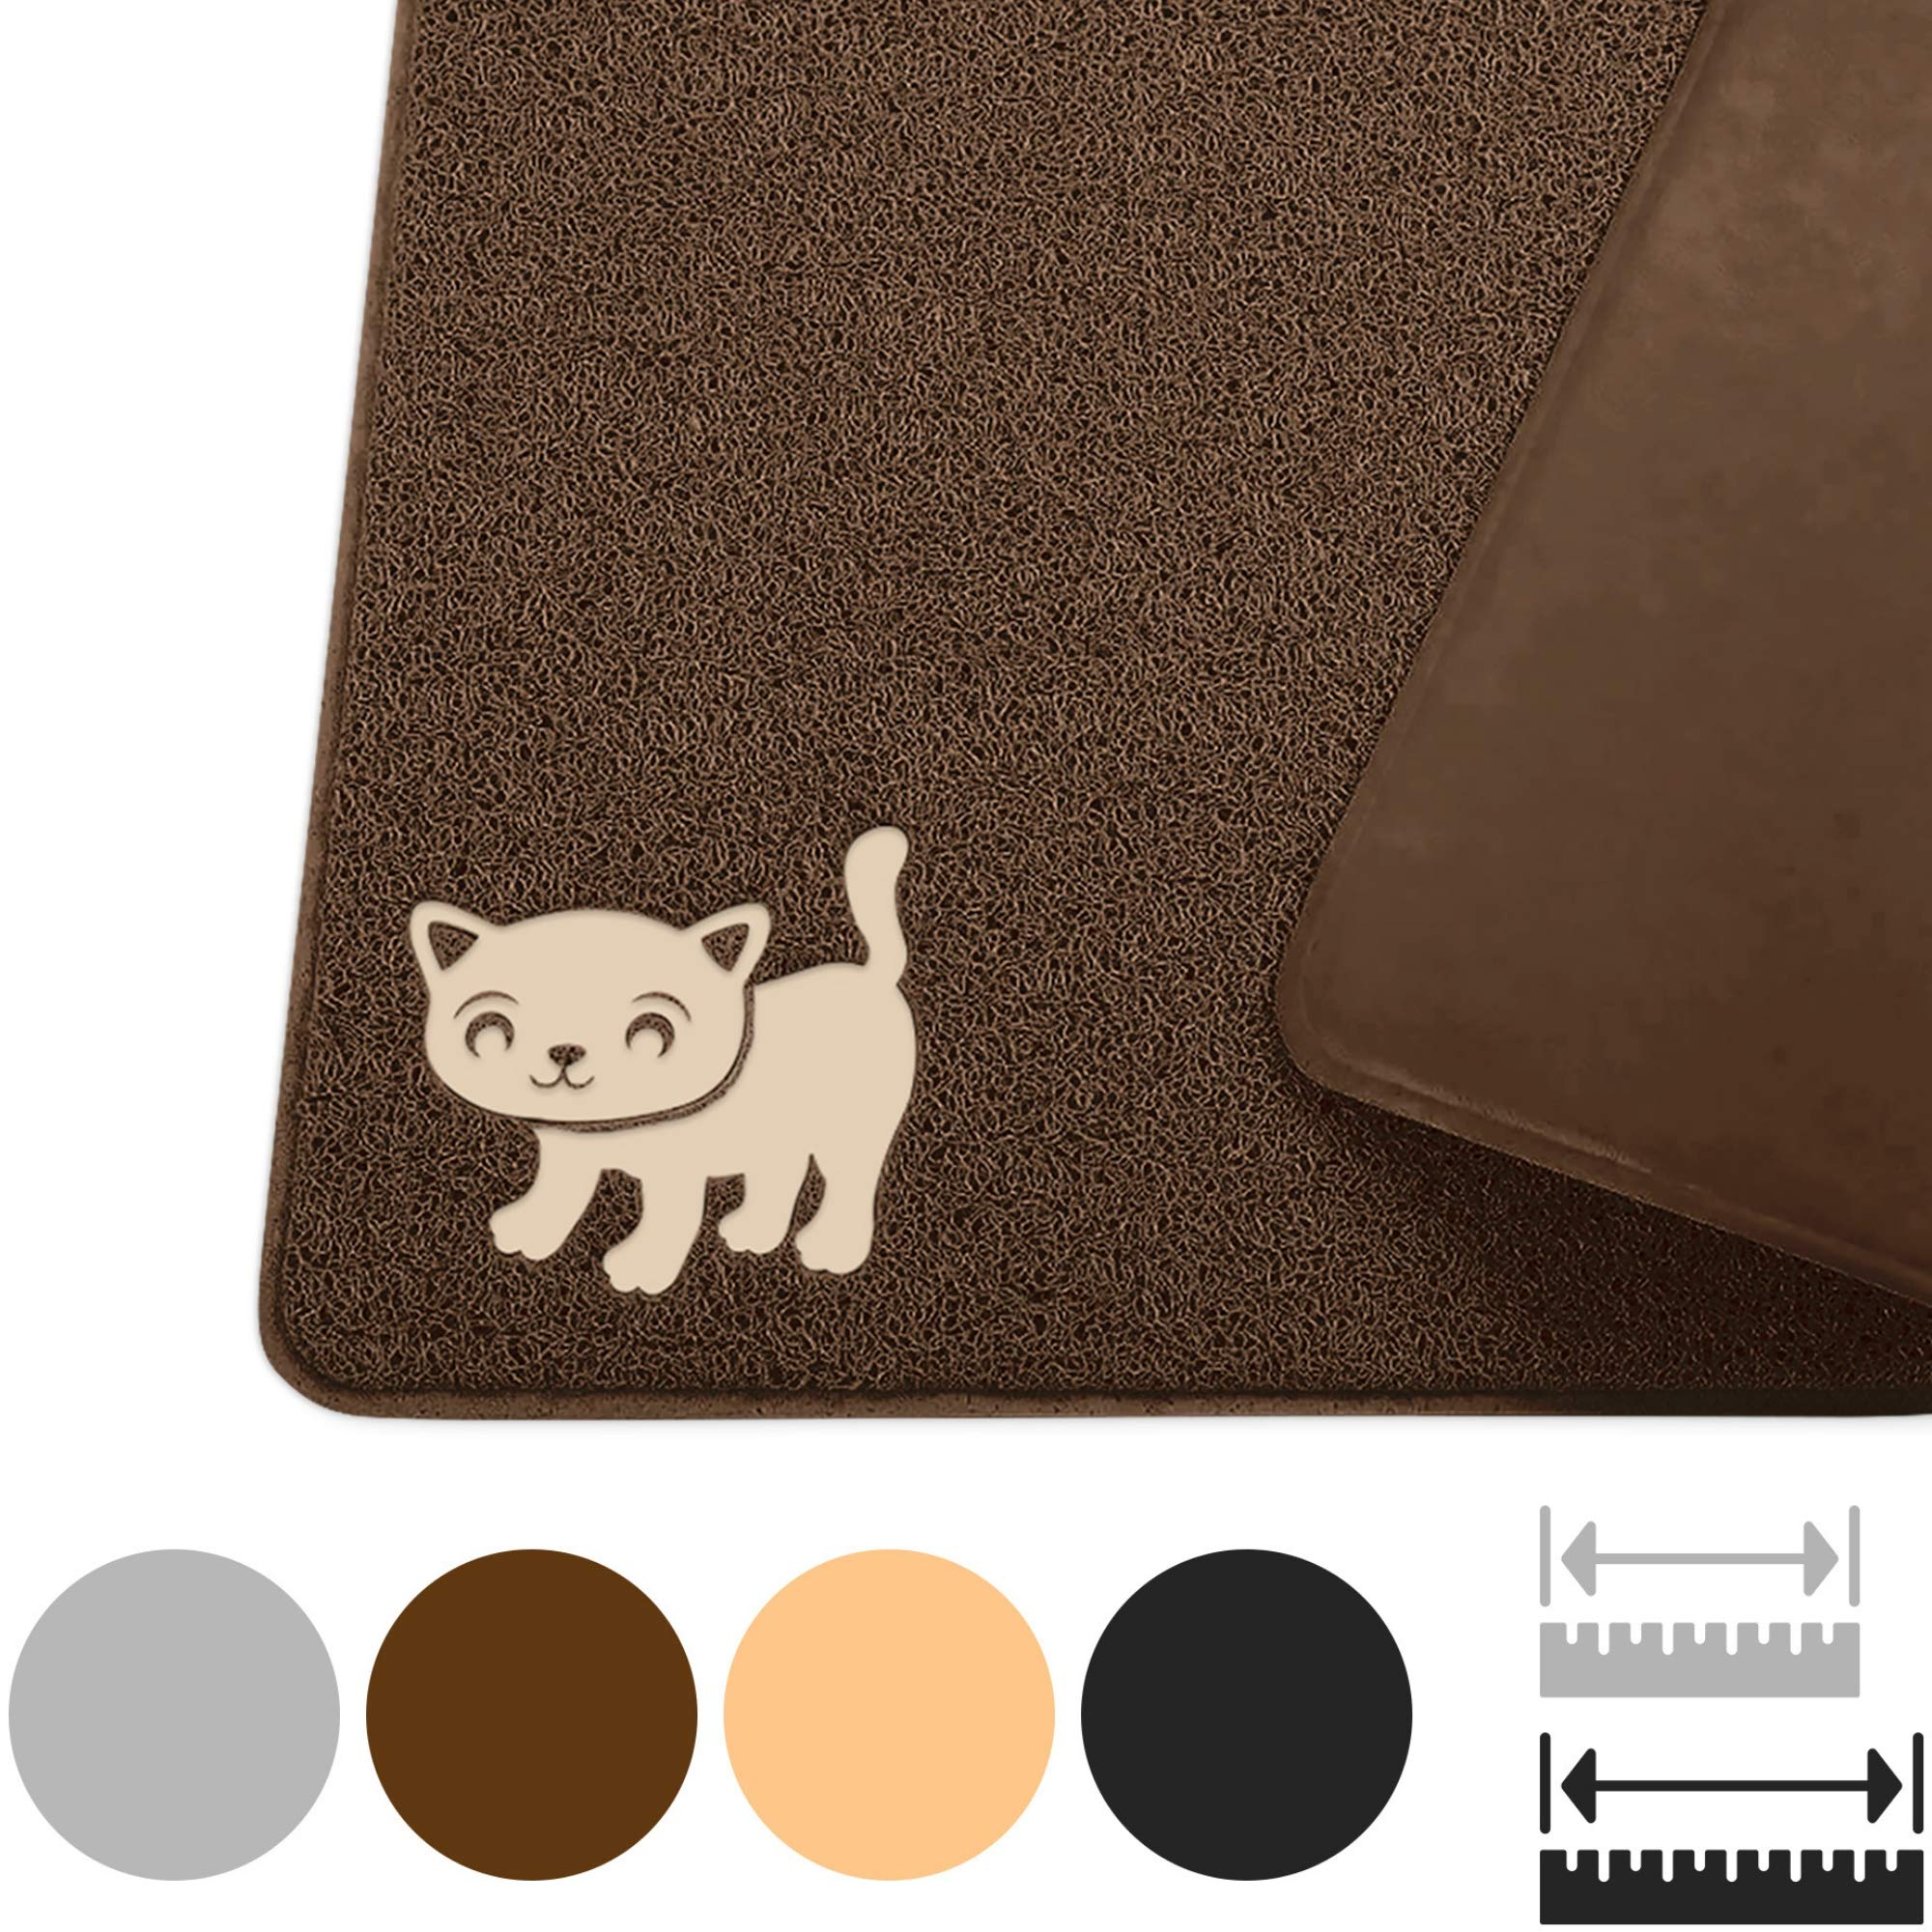 Smiling Paws Pets Premium Jumbo Cat Litter Mat, XL 47'' x 33'', Water Resistant, Effectively Traps Scattered Litter from Cats and Litter Box, Easy to Clean, Soft on Kitty Paws (Brown XXL) by Smiling Paws Pets